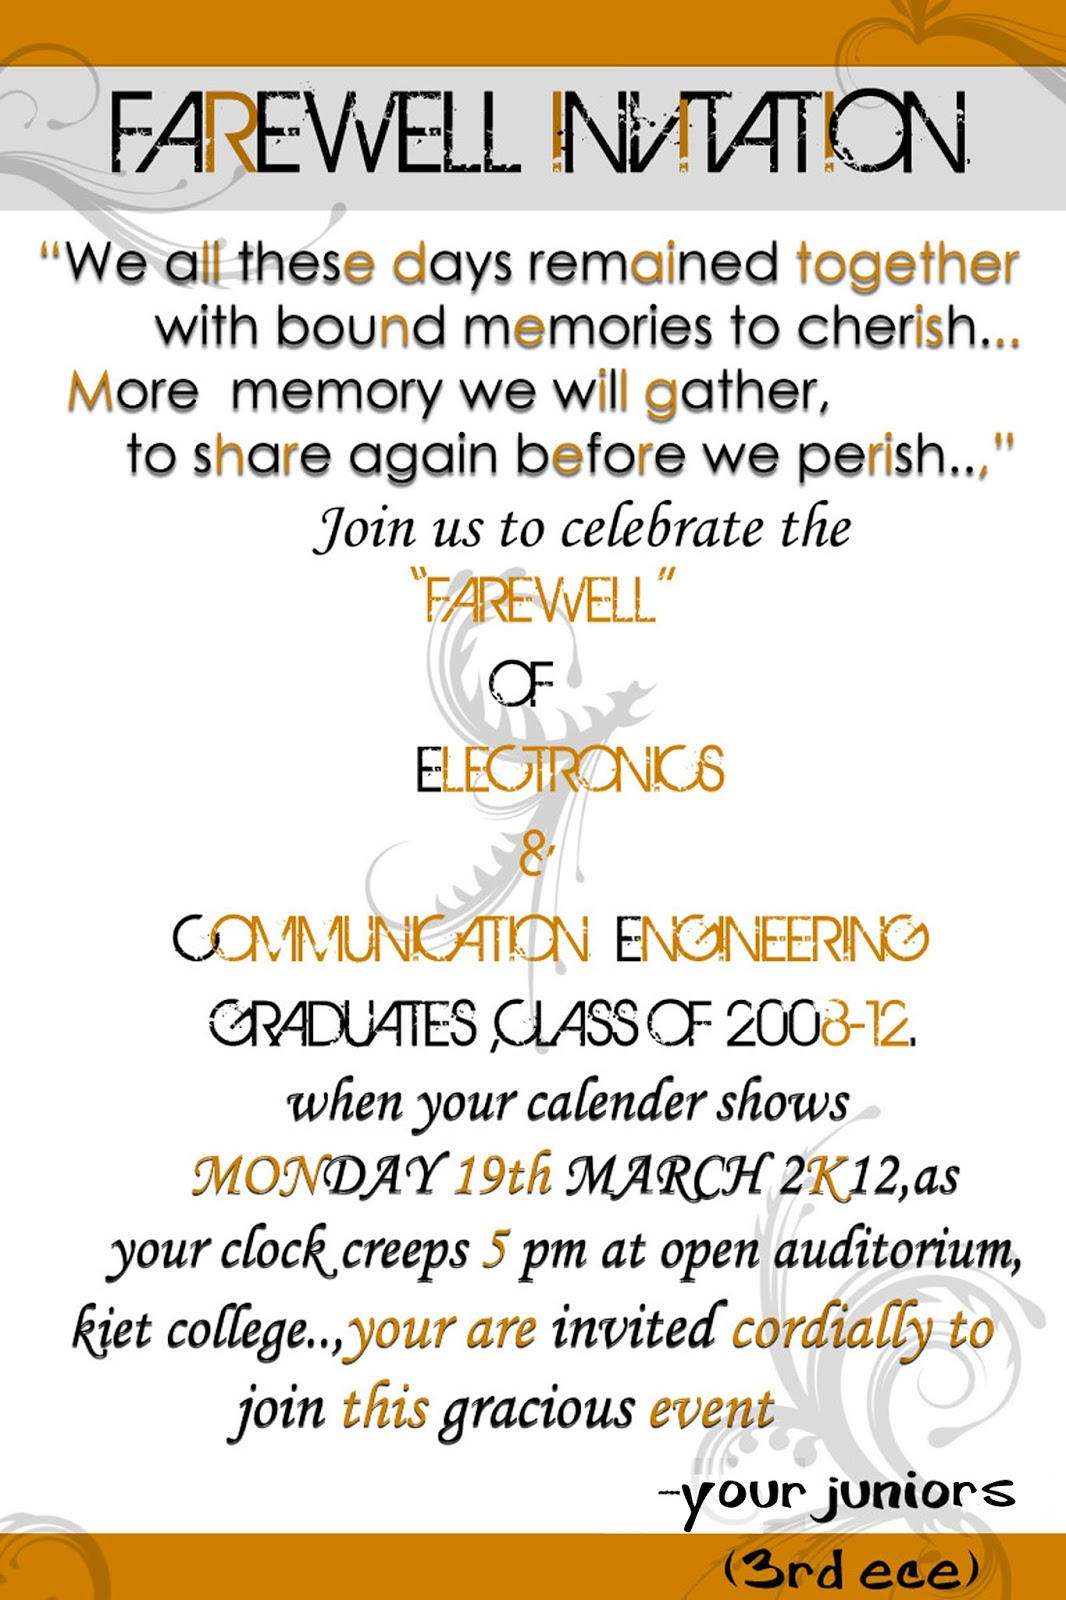 photoshoper u0026 39 stop  farewell invitation